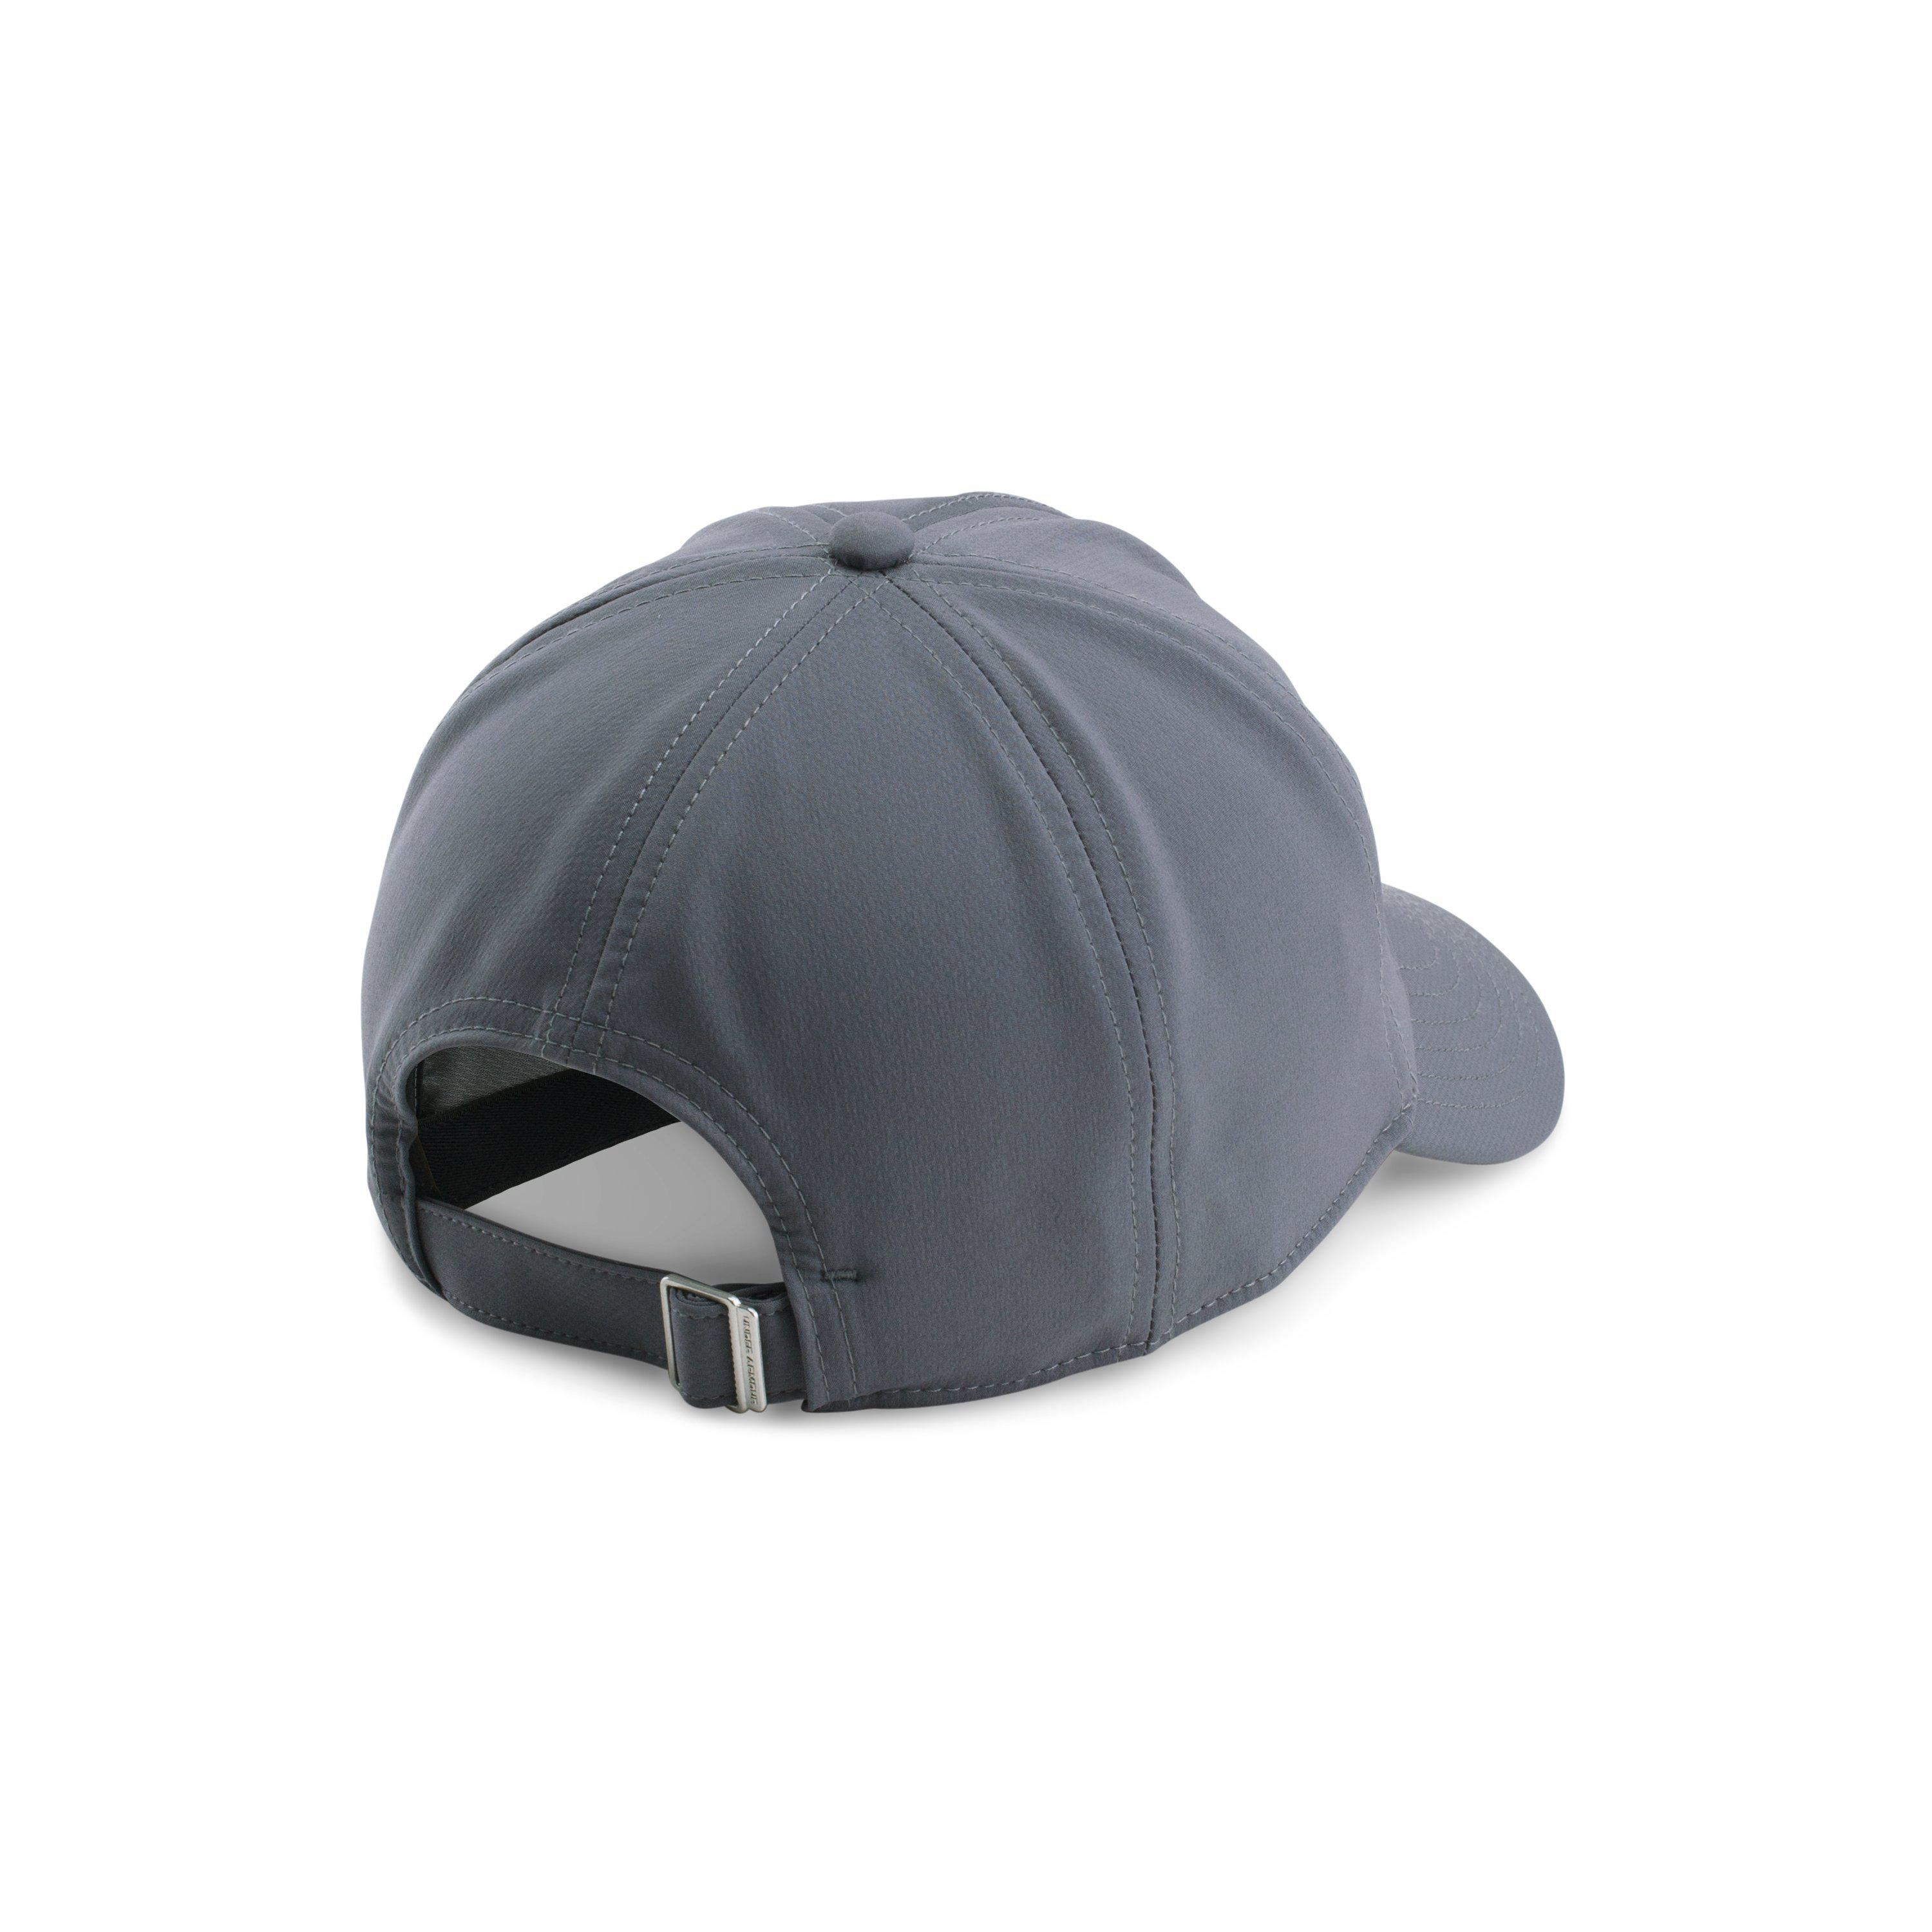 03a50b547d7 top quality lyst under armour womens ua renegade cap in gray 530fd 68182